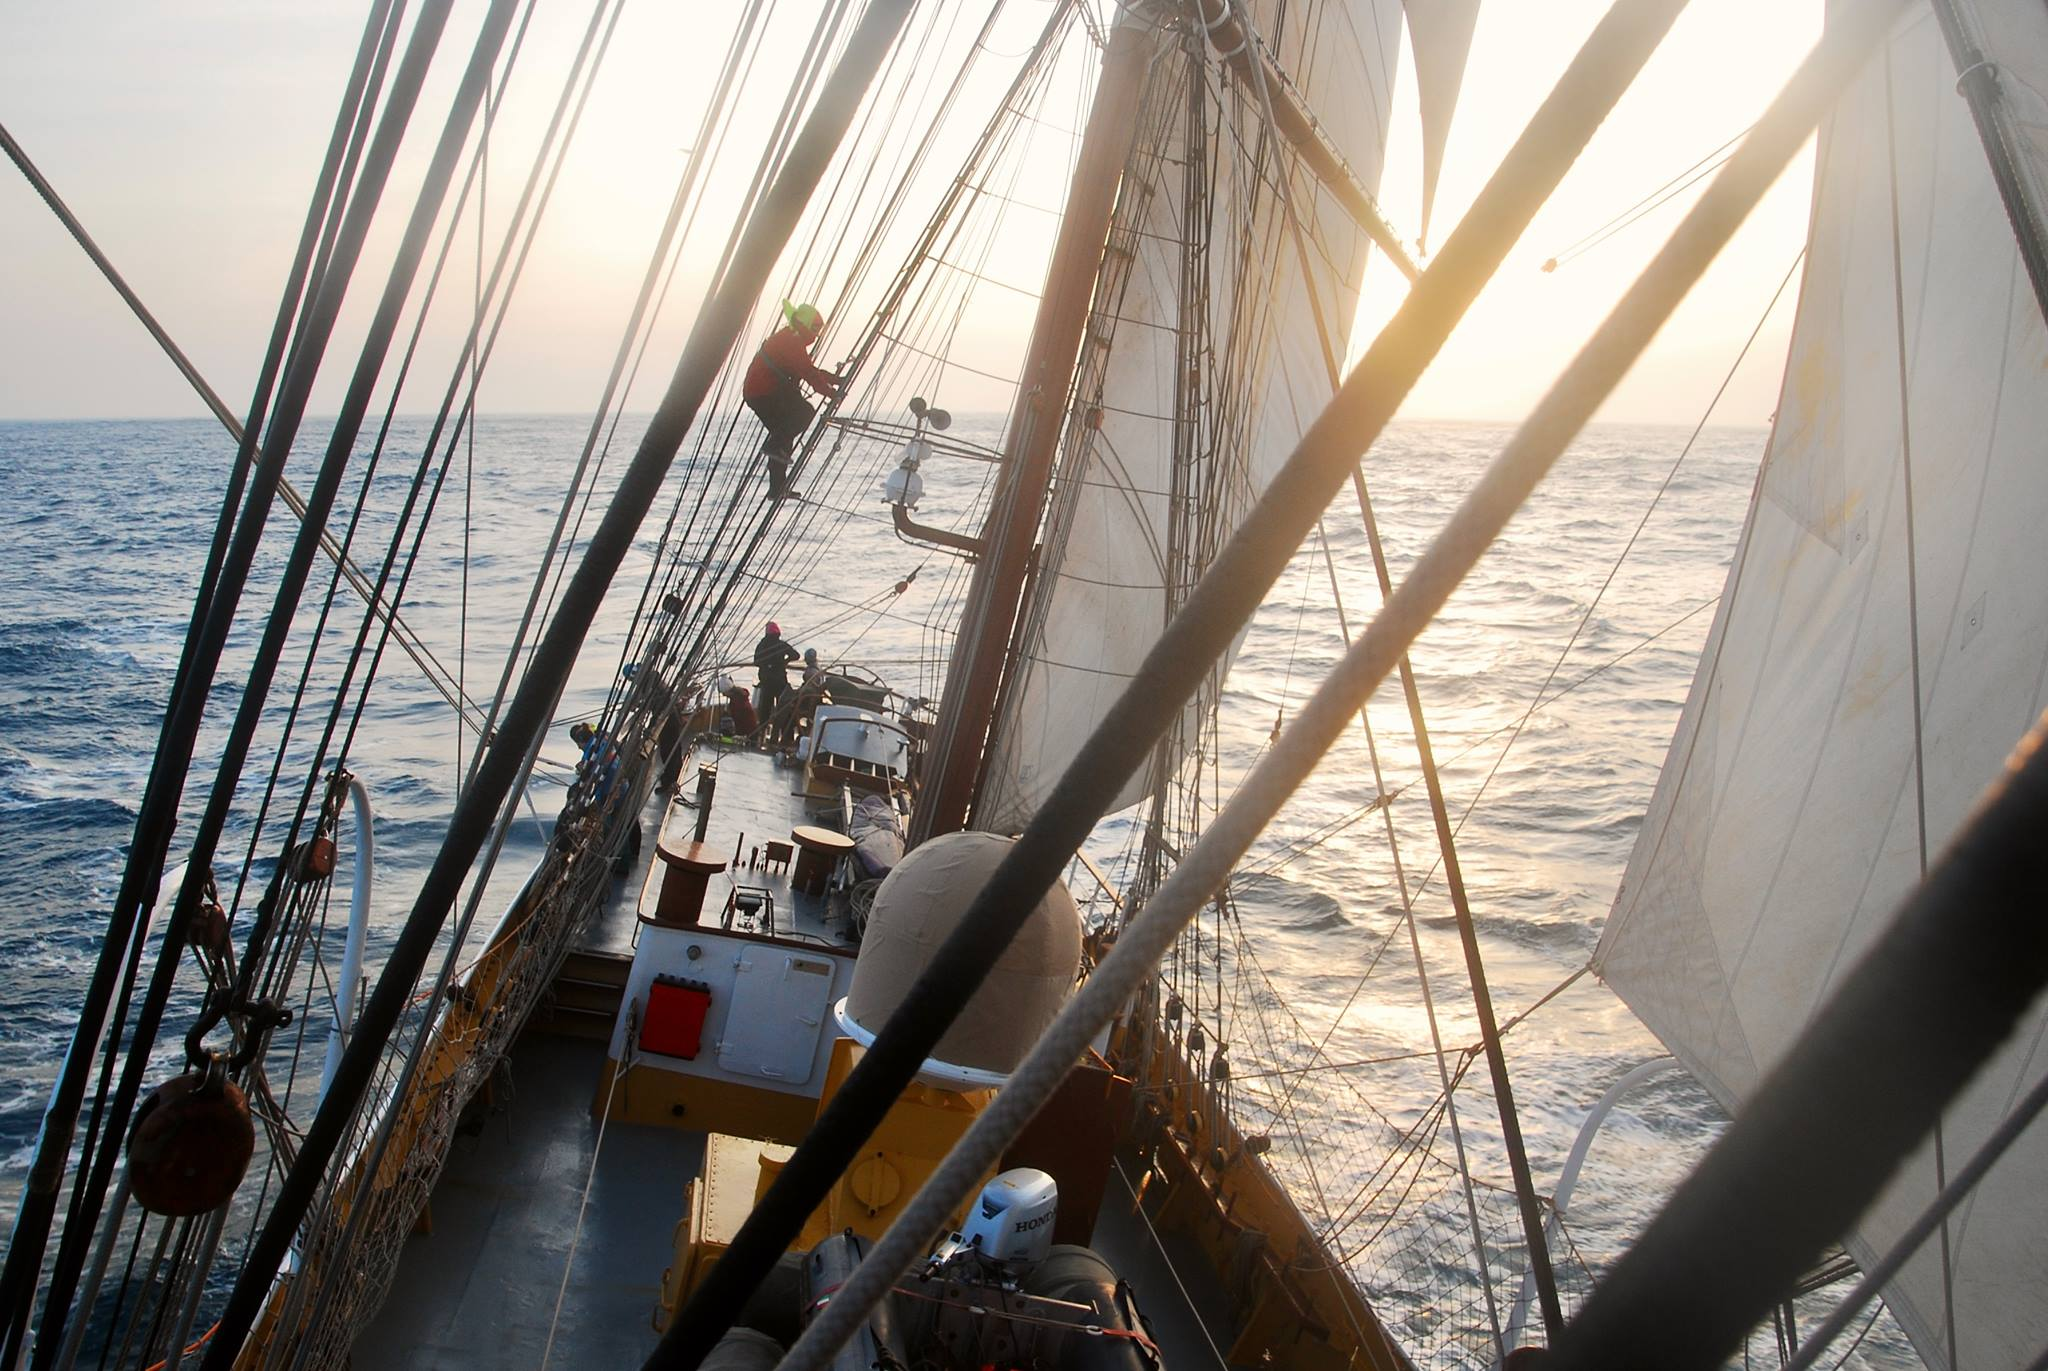 Climathon onboard 'Sail to the COP' - Climate-KIC